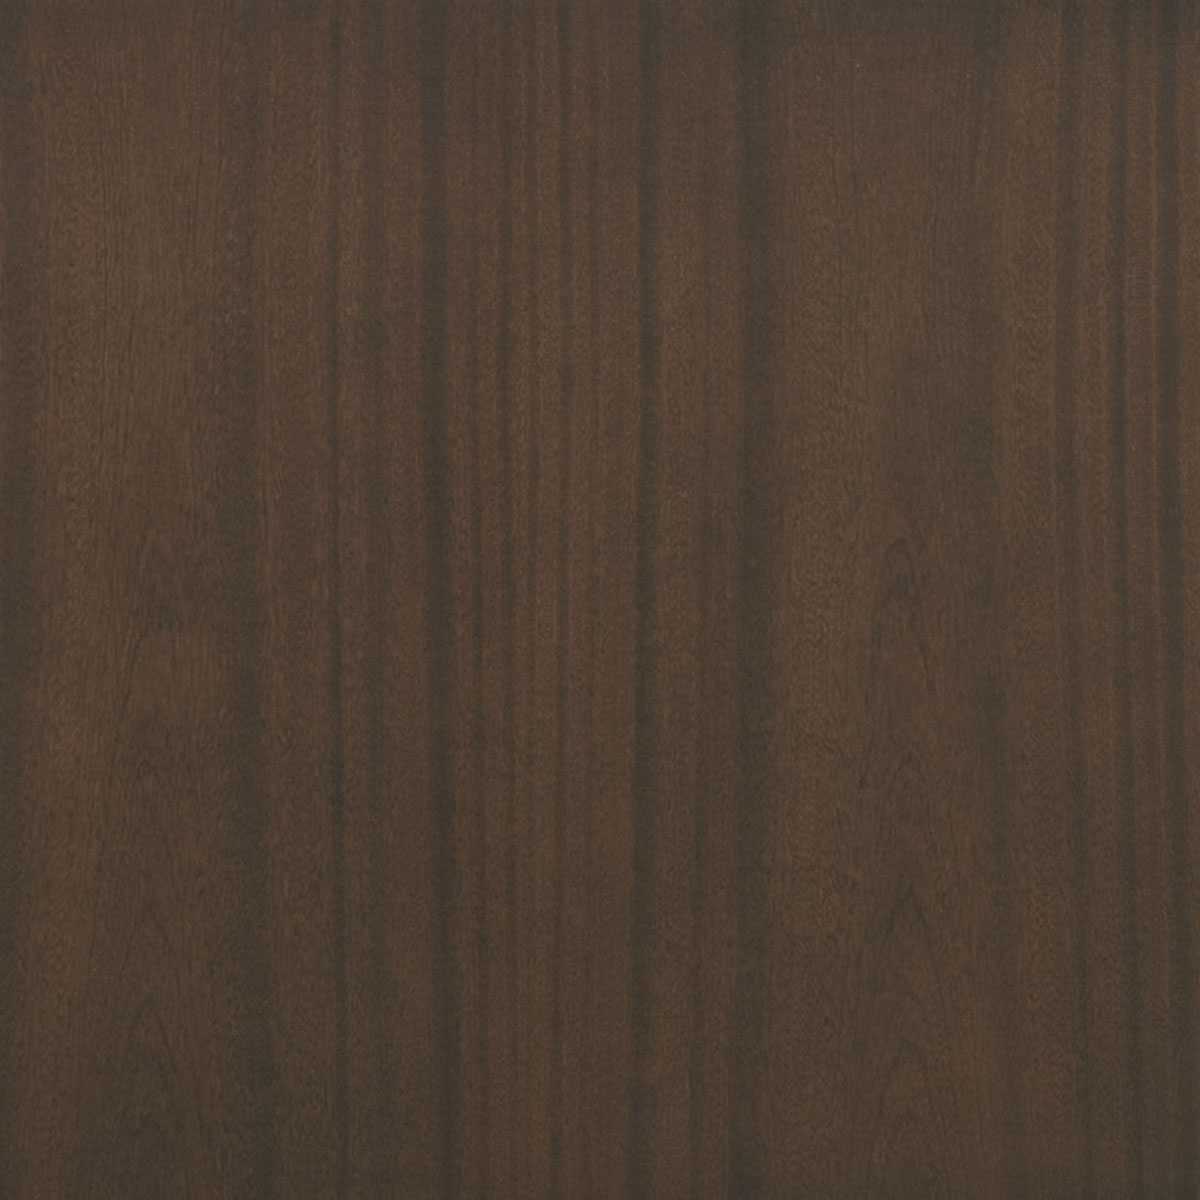 Mahogany Wood, Walnut Finish